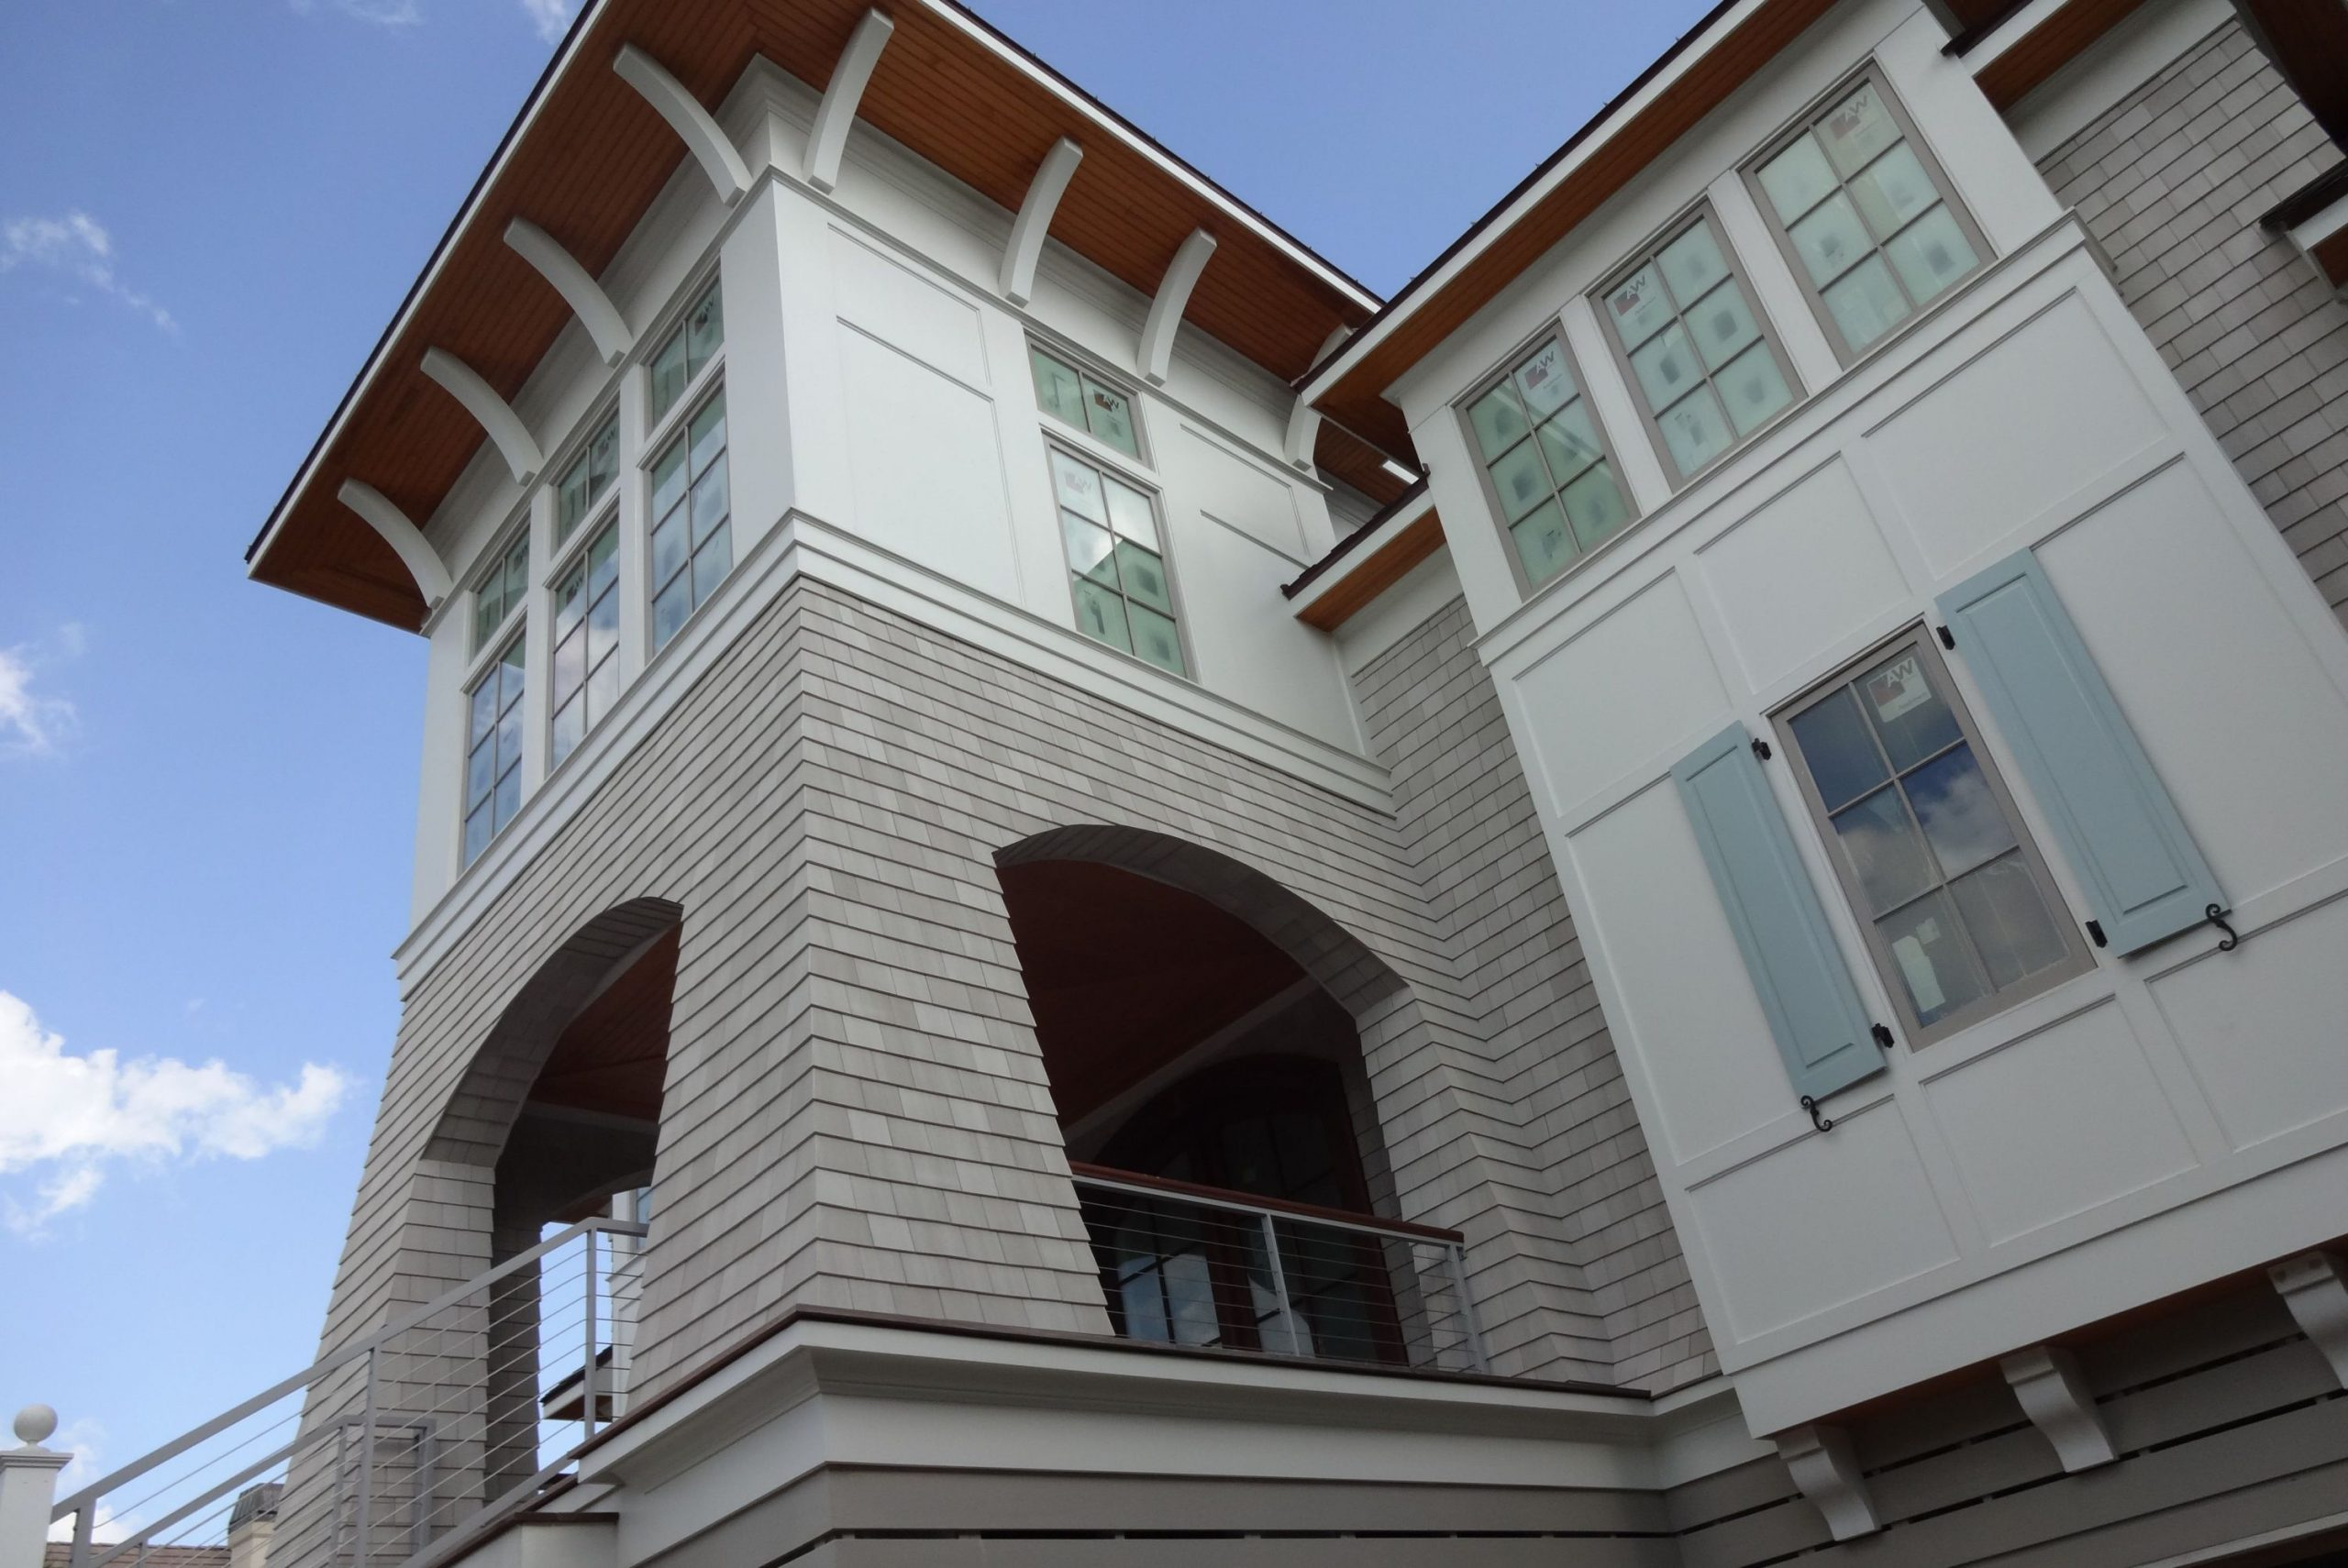 Light gray house siding colors with white trim and wall paneling. Real wood soffit. Modern wire railings with wood hand rail. Gray framed windows.